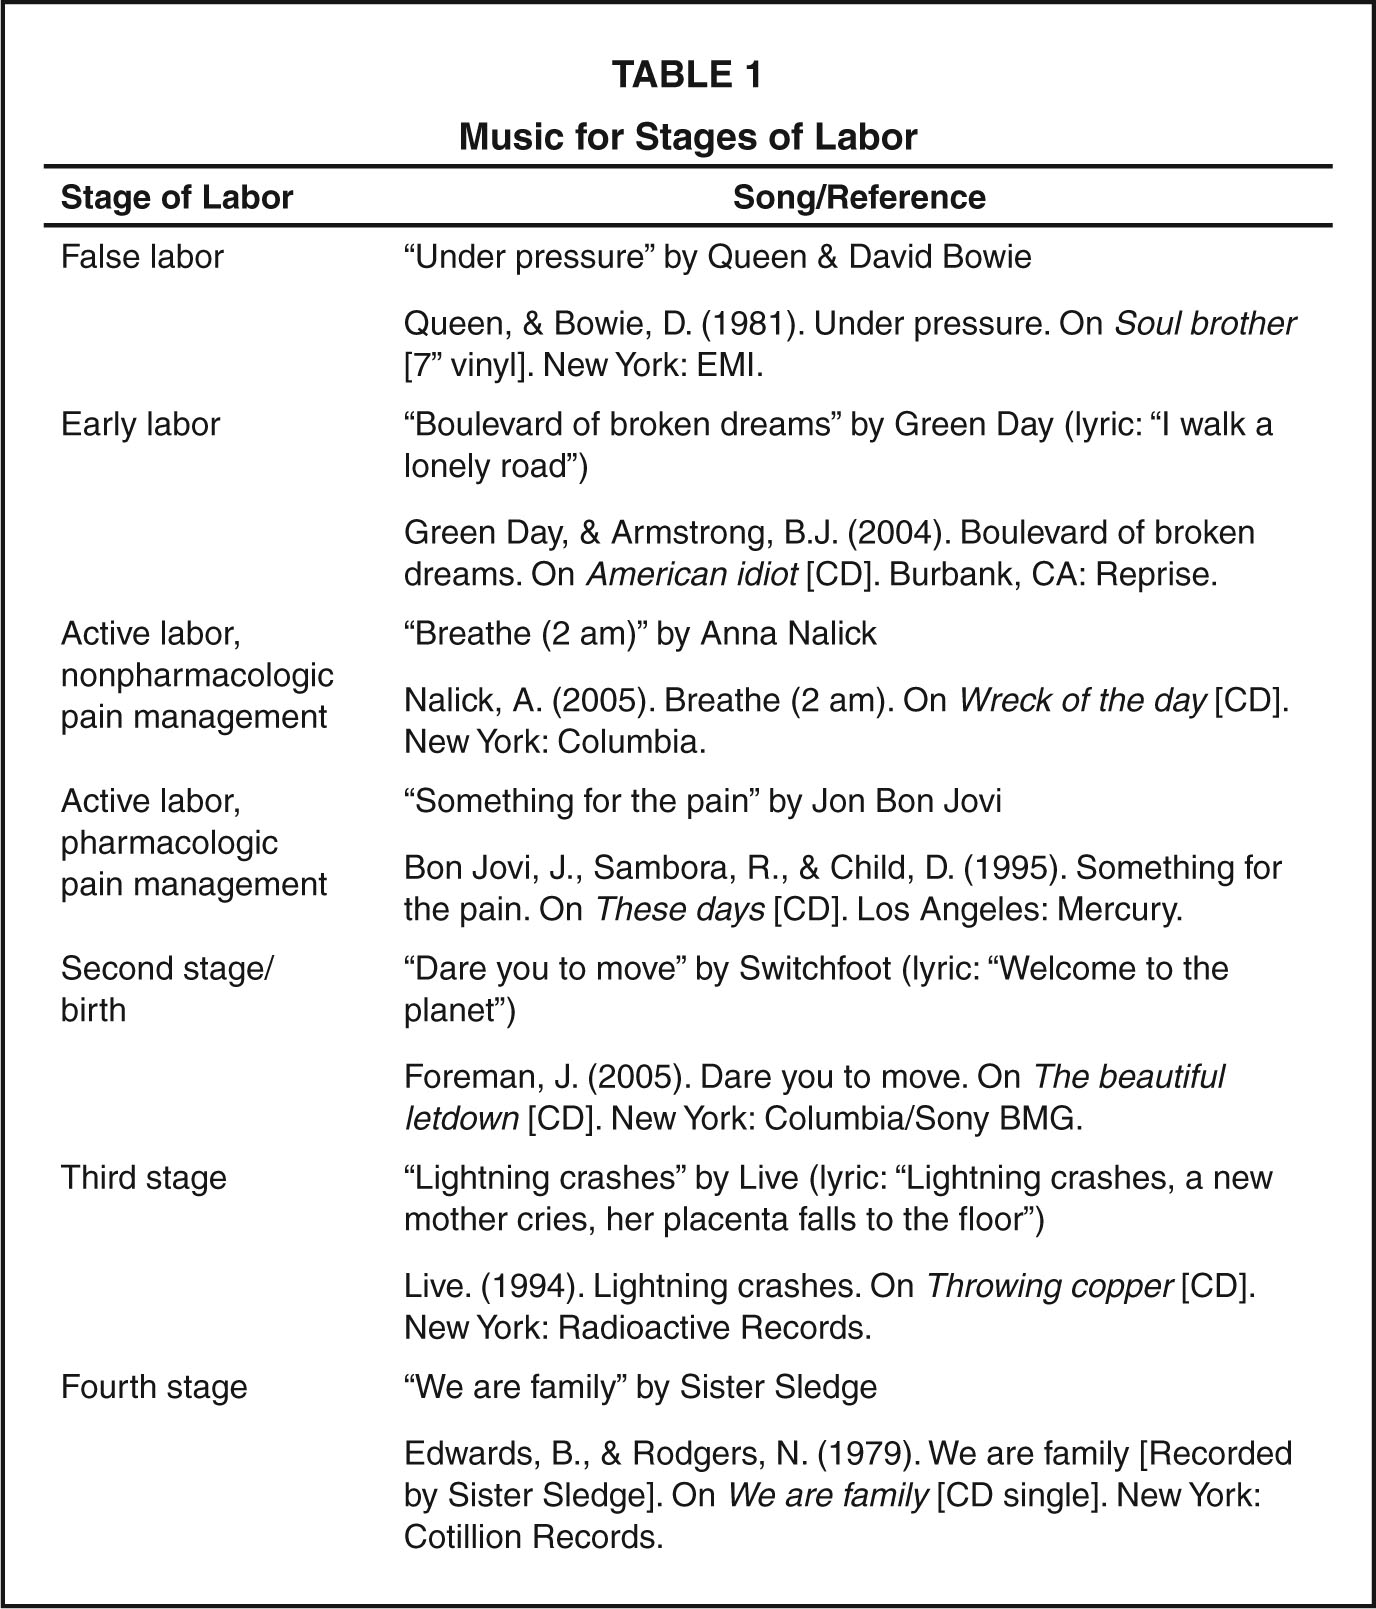 Music for Stages of Labor